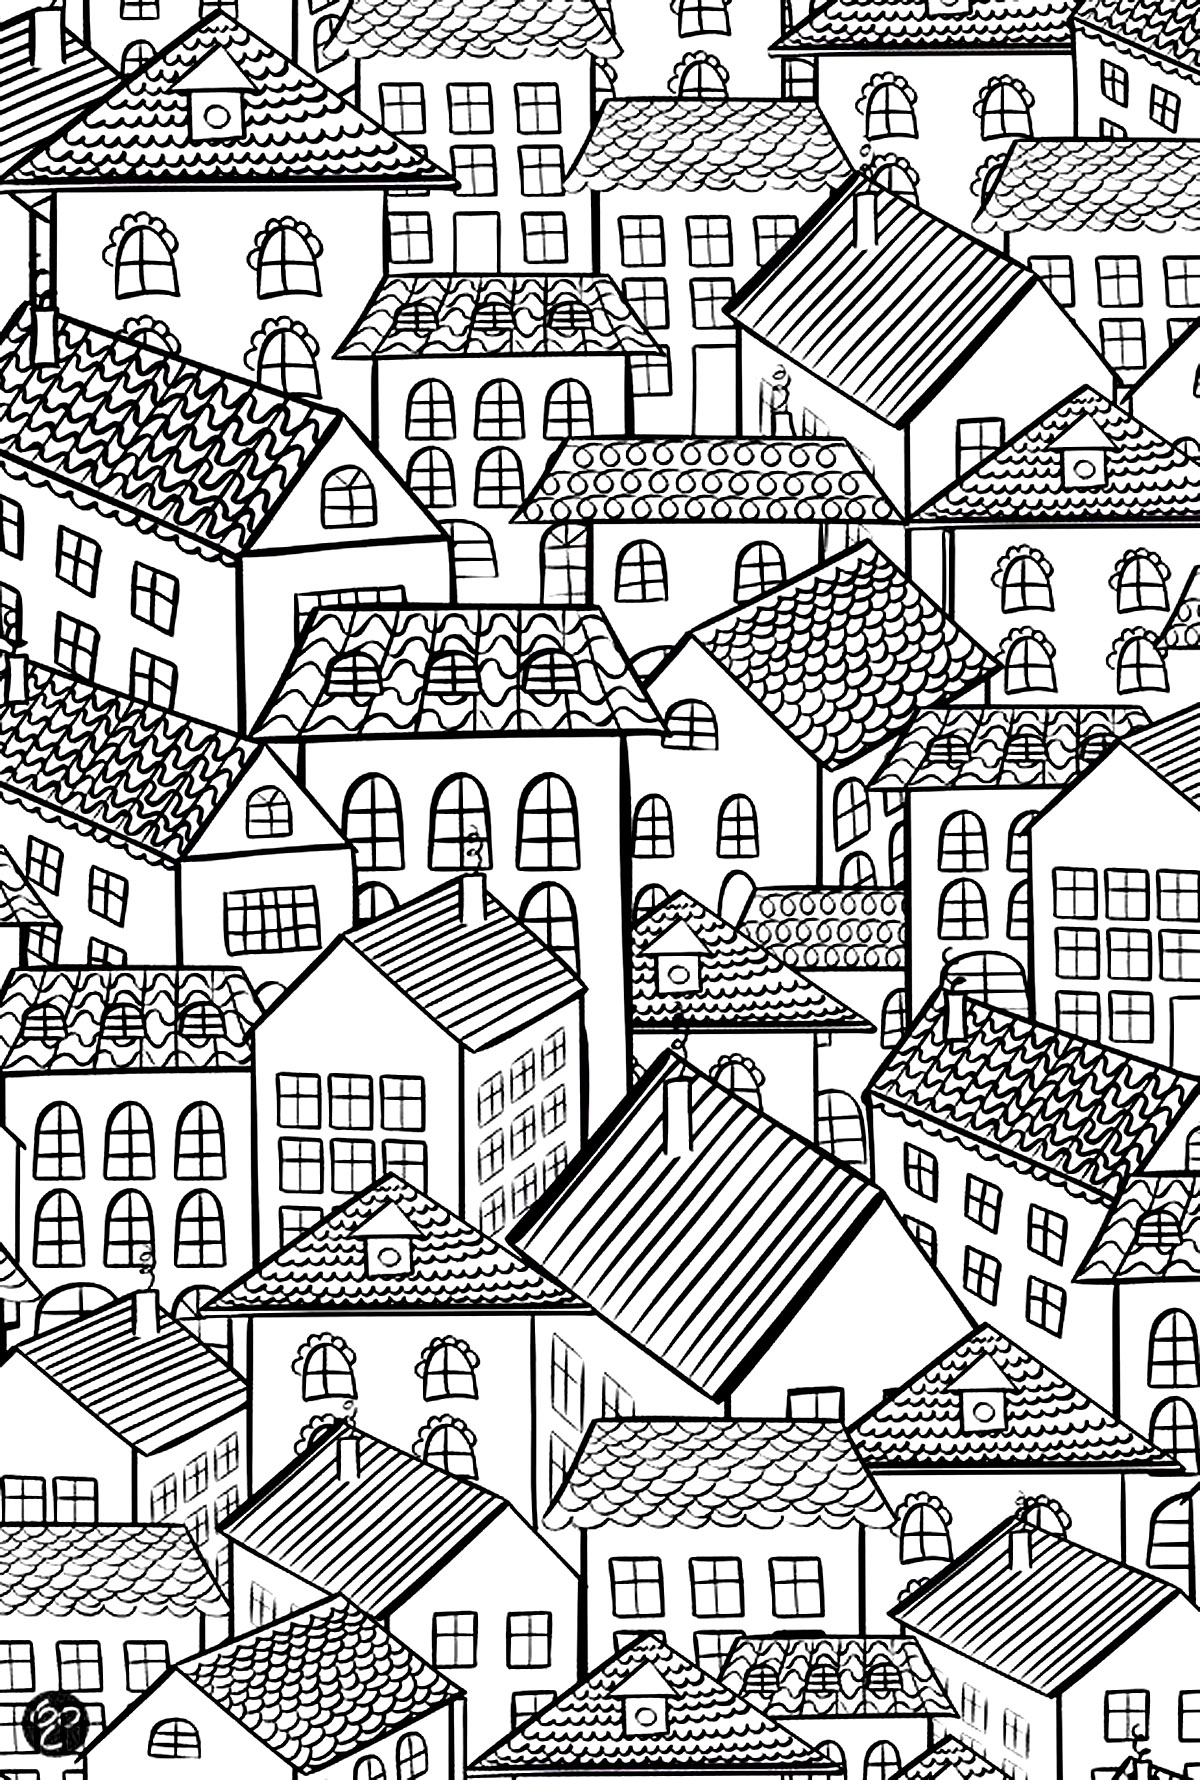 coloring sheets house architecture village roofs architecture adult coloring pages sheets house coloring